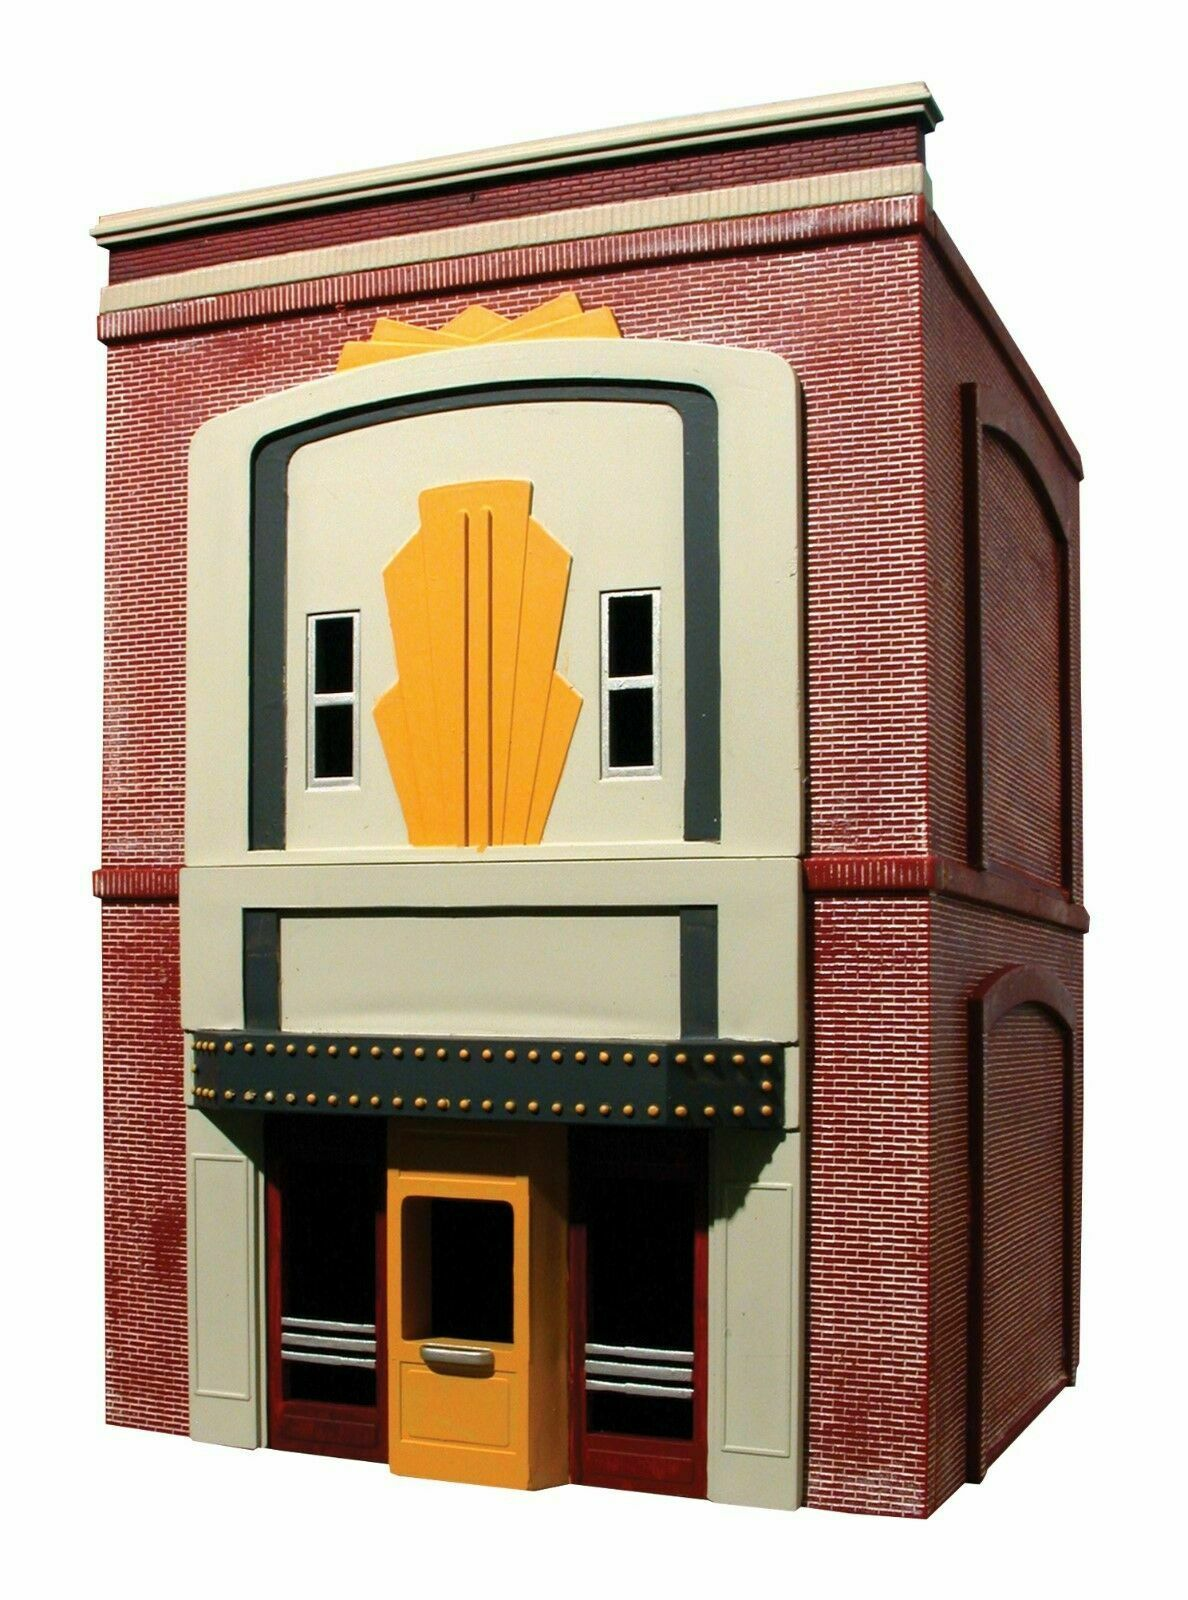 AMERI-TOWNE OGR 867 O Scale PALACE MOVIE THEATER Railroad Building Kit Lionel